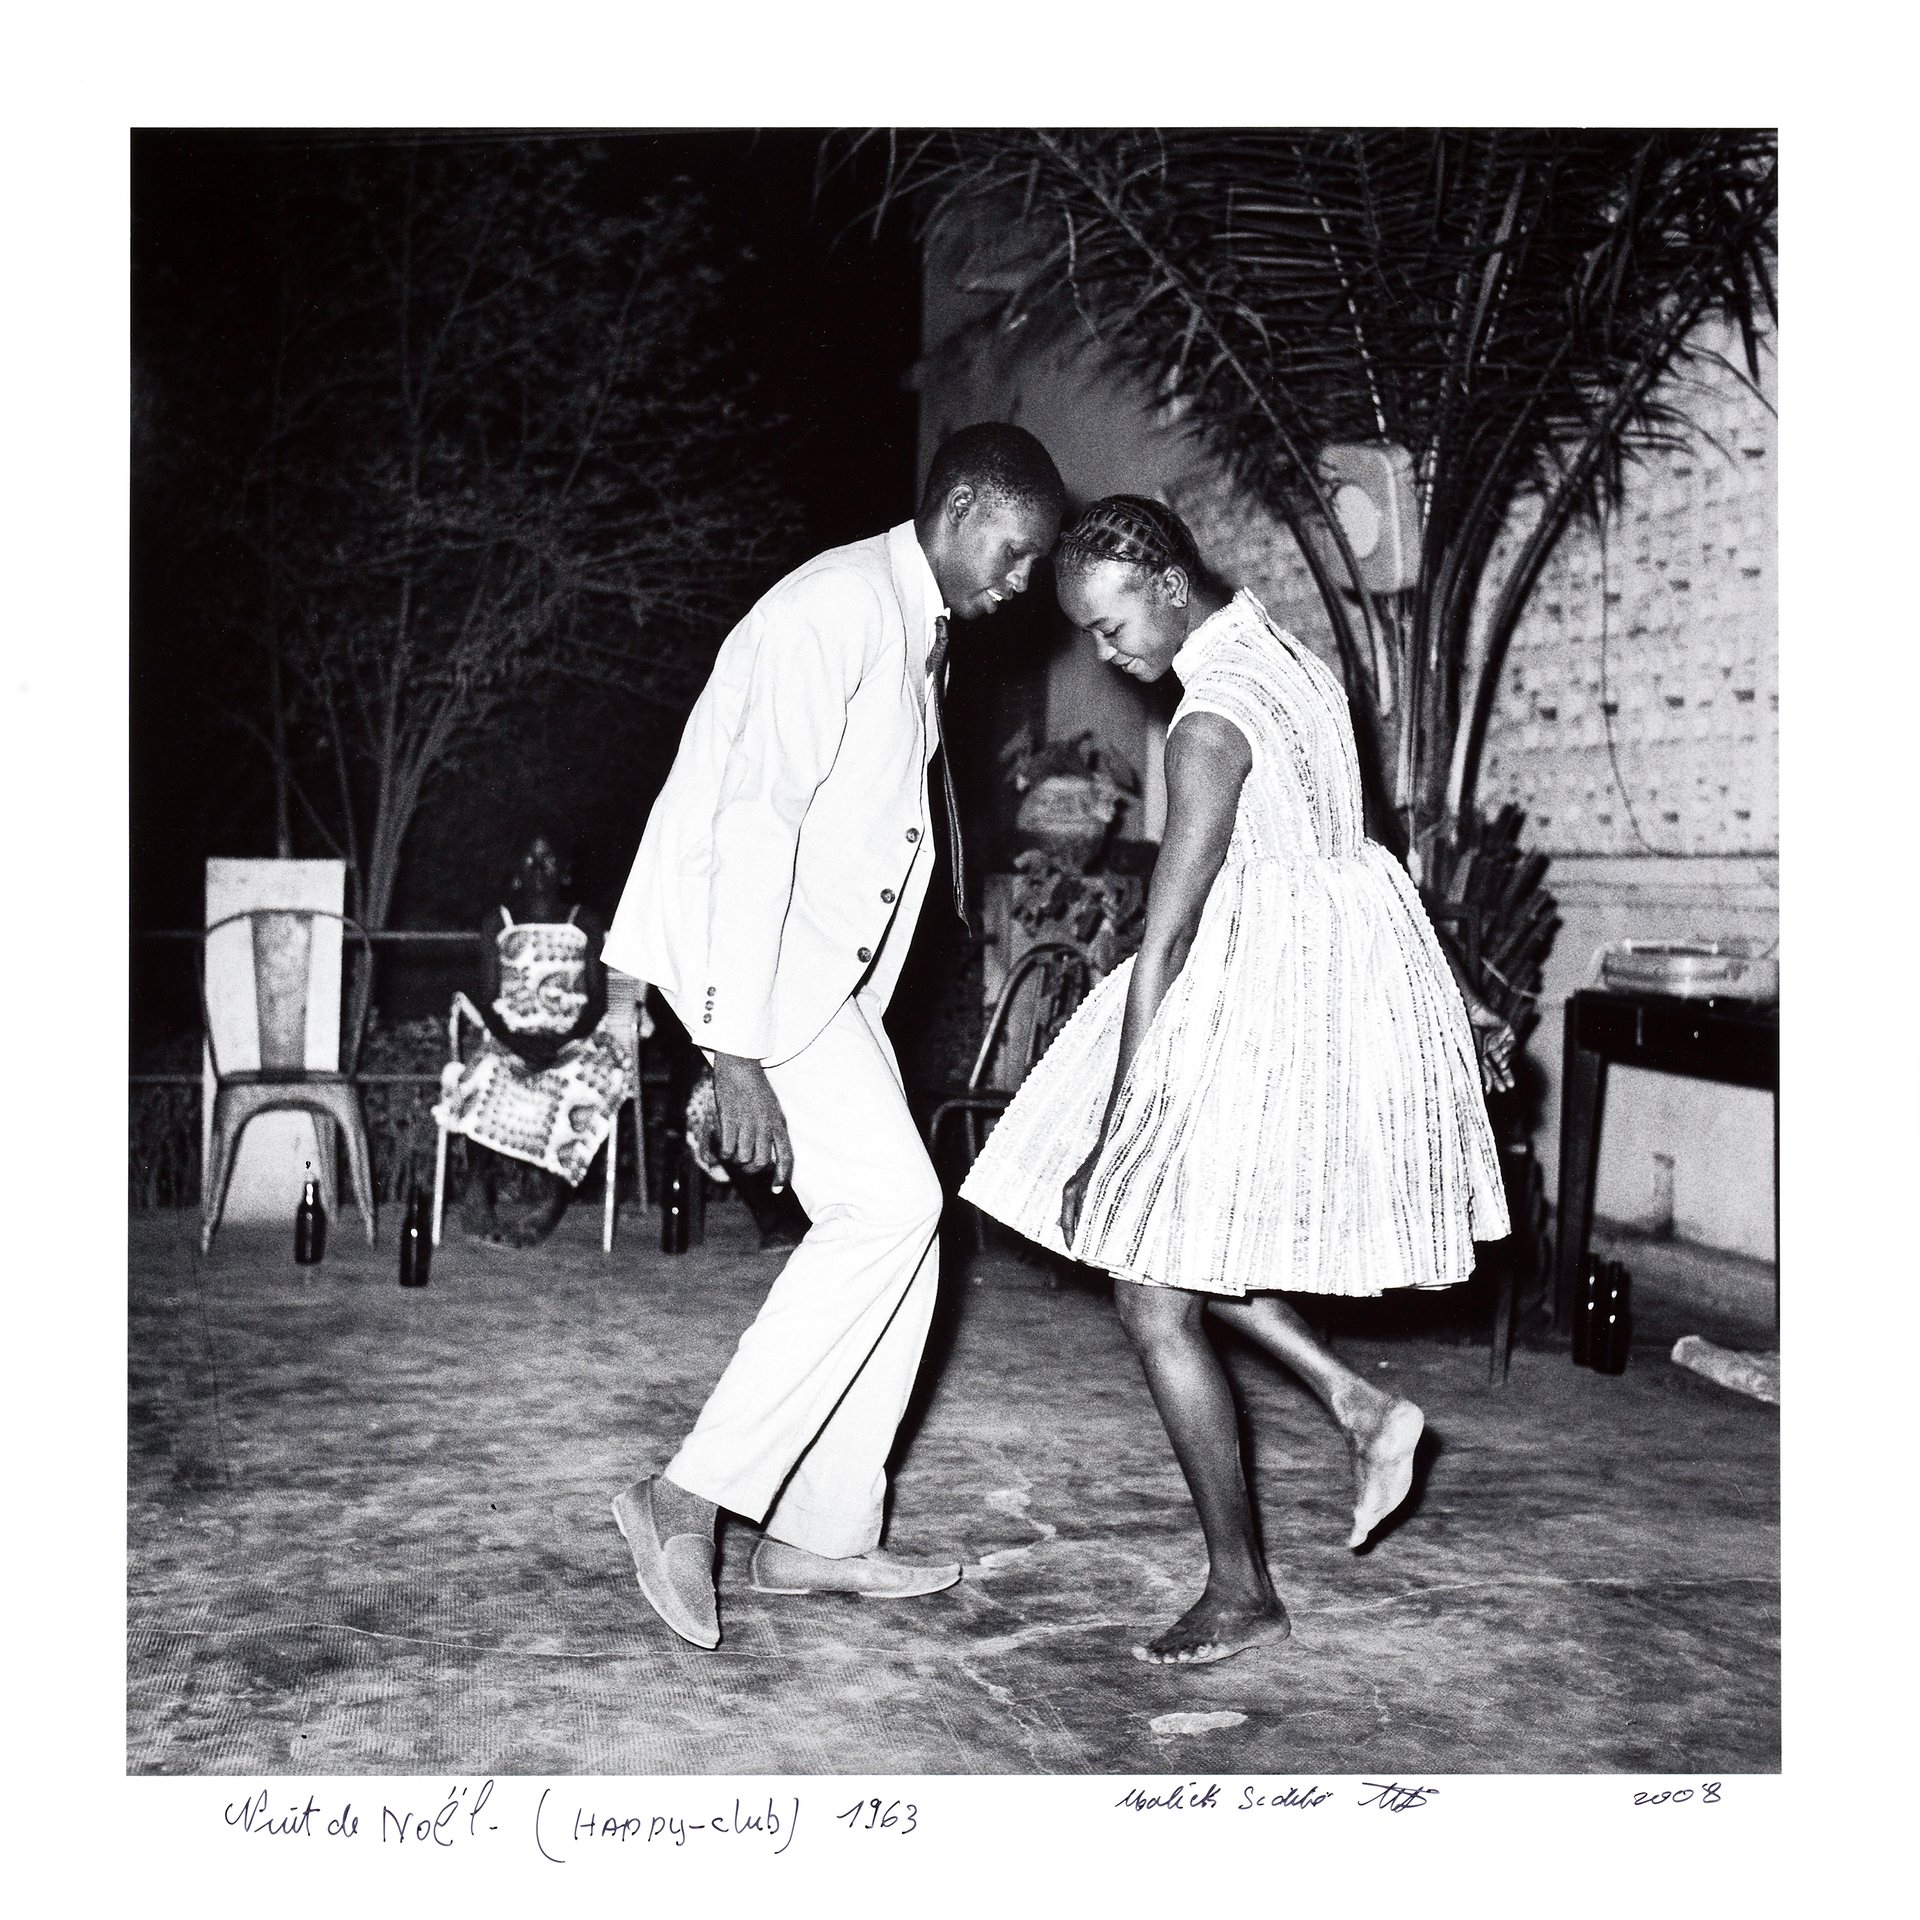 Malick Sibidé - Nuit de Noël (Happy-Club) 1963. Photograph: Franko Khoury/National Museum of African Art